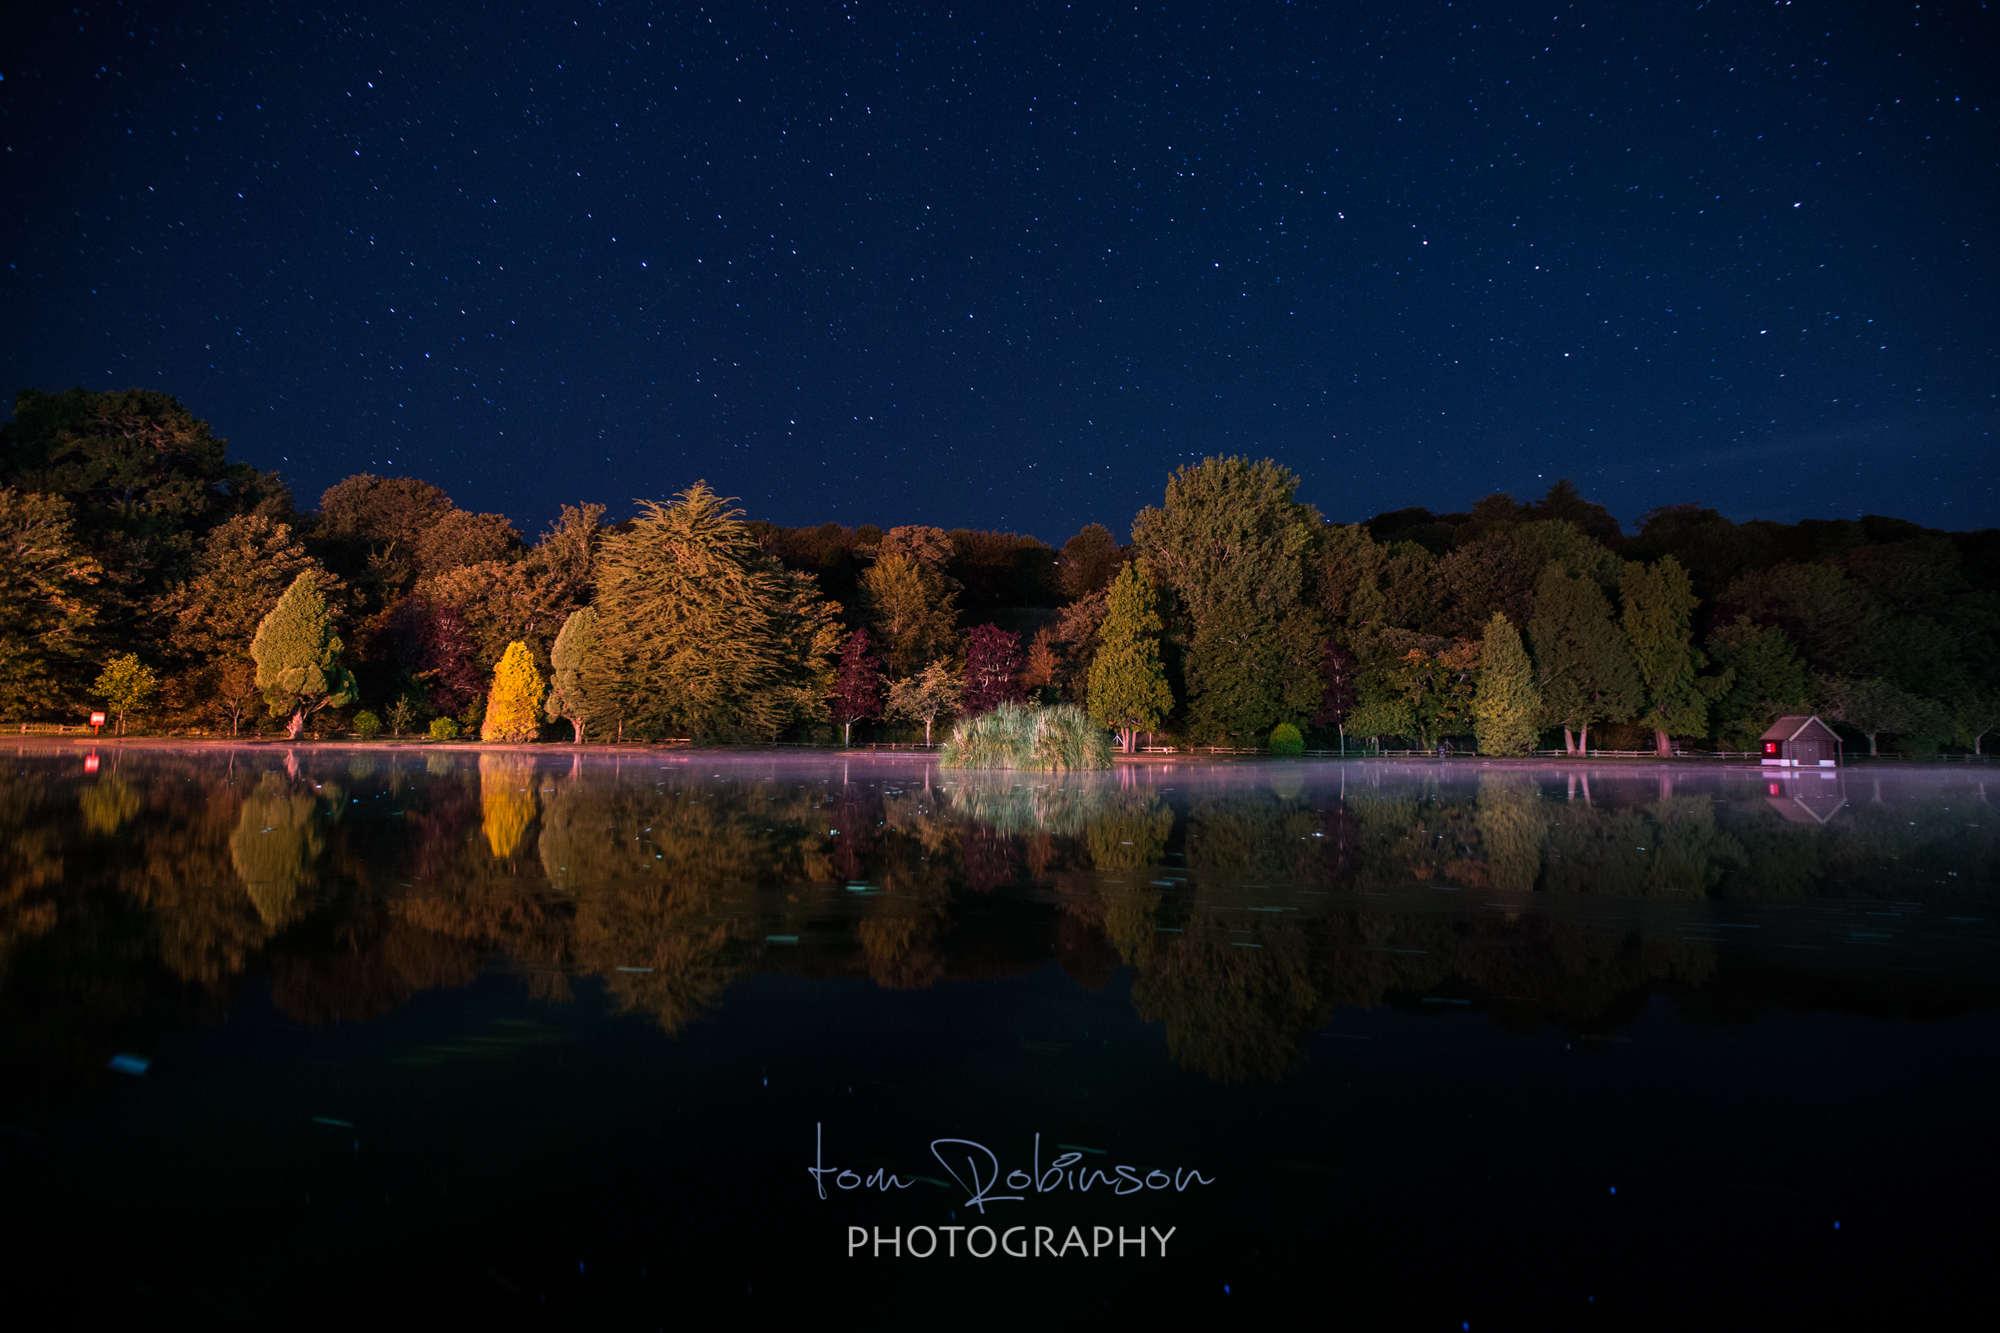 Helston boating lake by night from the Cornwall by night collection by Tom Robinson Photography